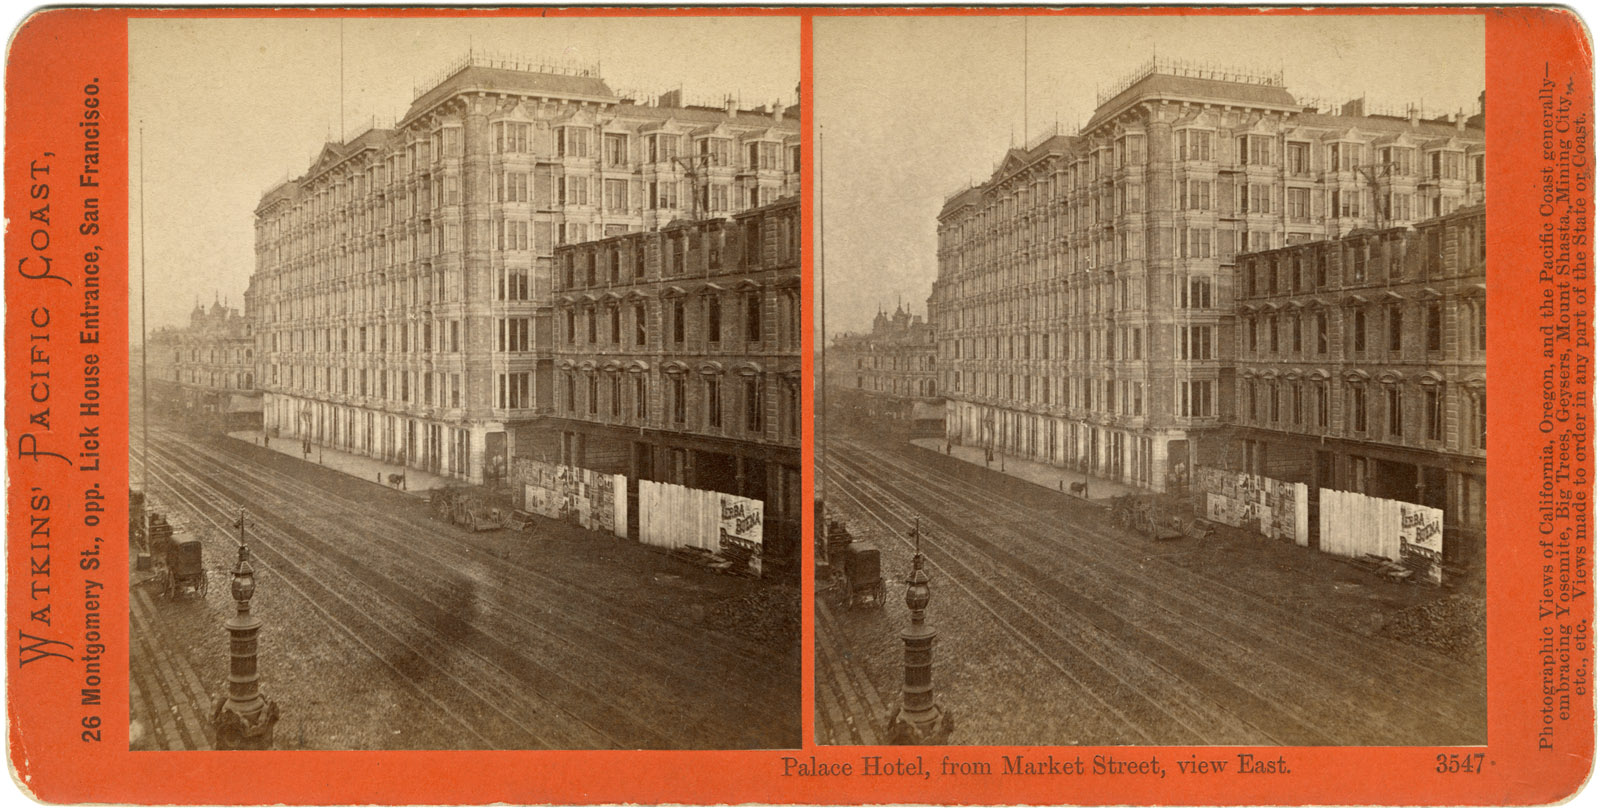 Watkins #3547 - Palace Hotel, from Market Street, view East.